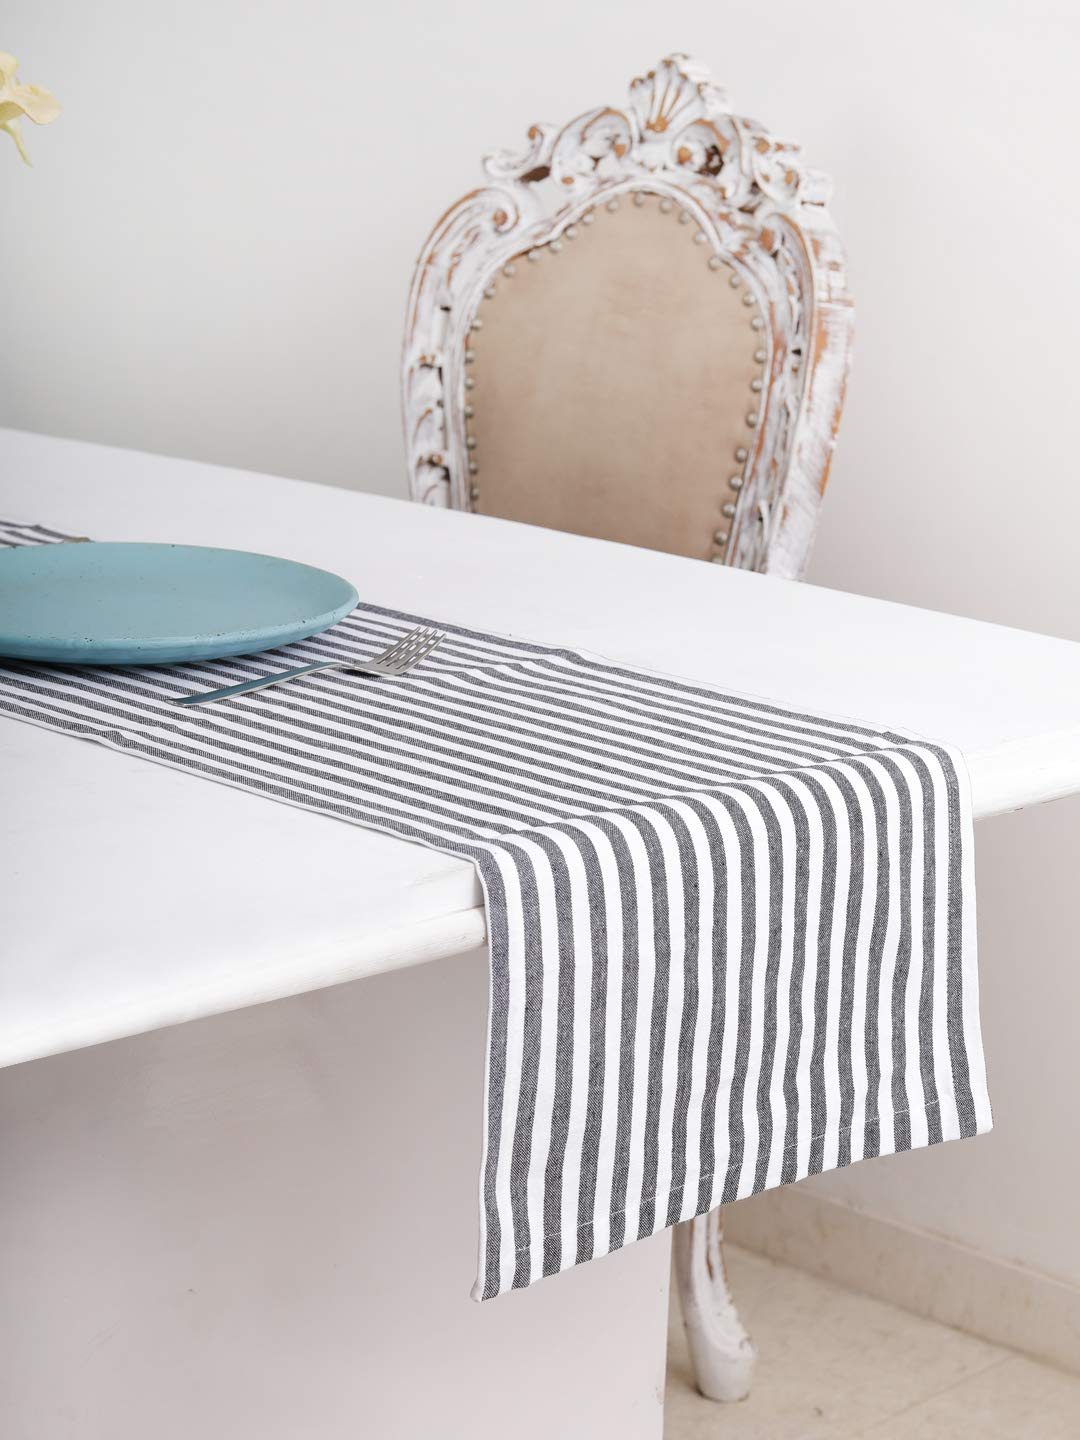 Cotton Table Runner (13 X 72 Inches), Black & White Stripe - 1'' Hemmed With Mitered Corner,Perfect For All Seasons And Holidays